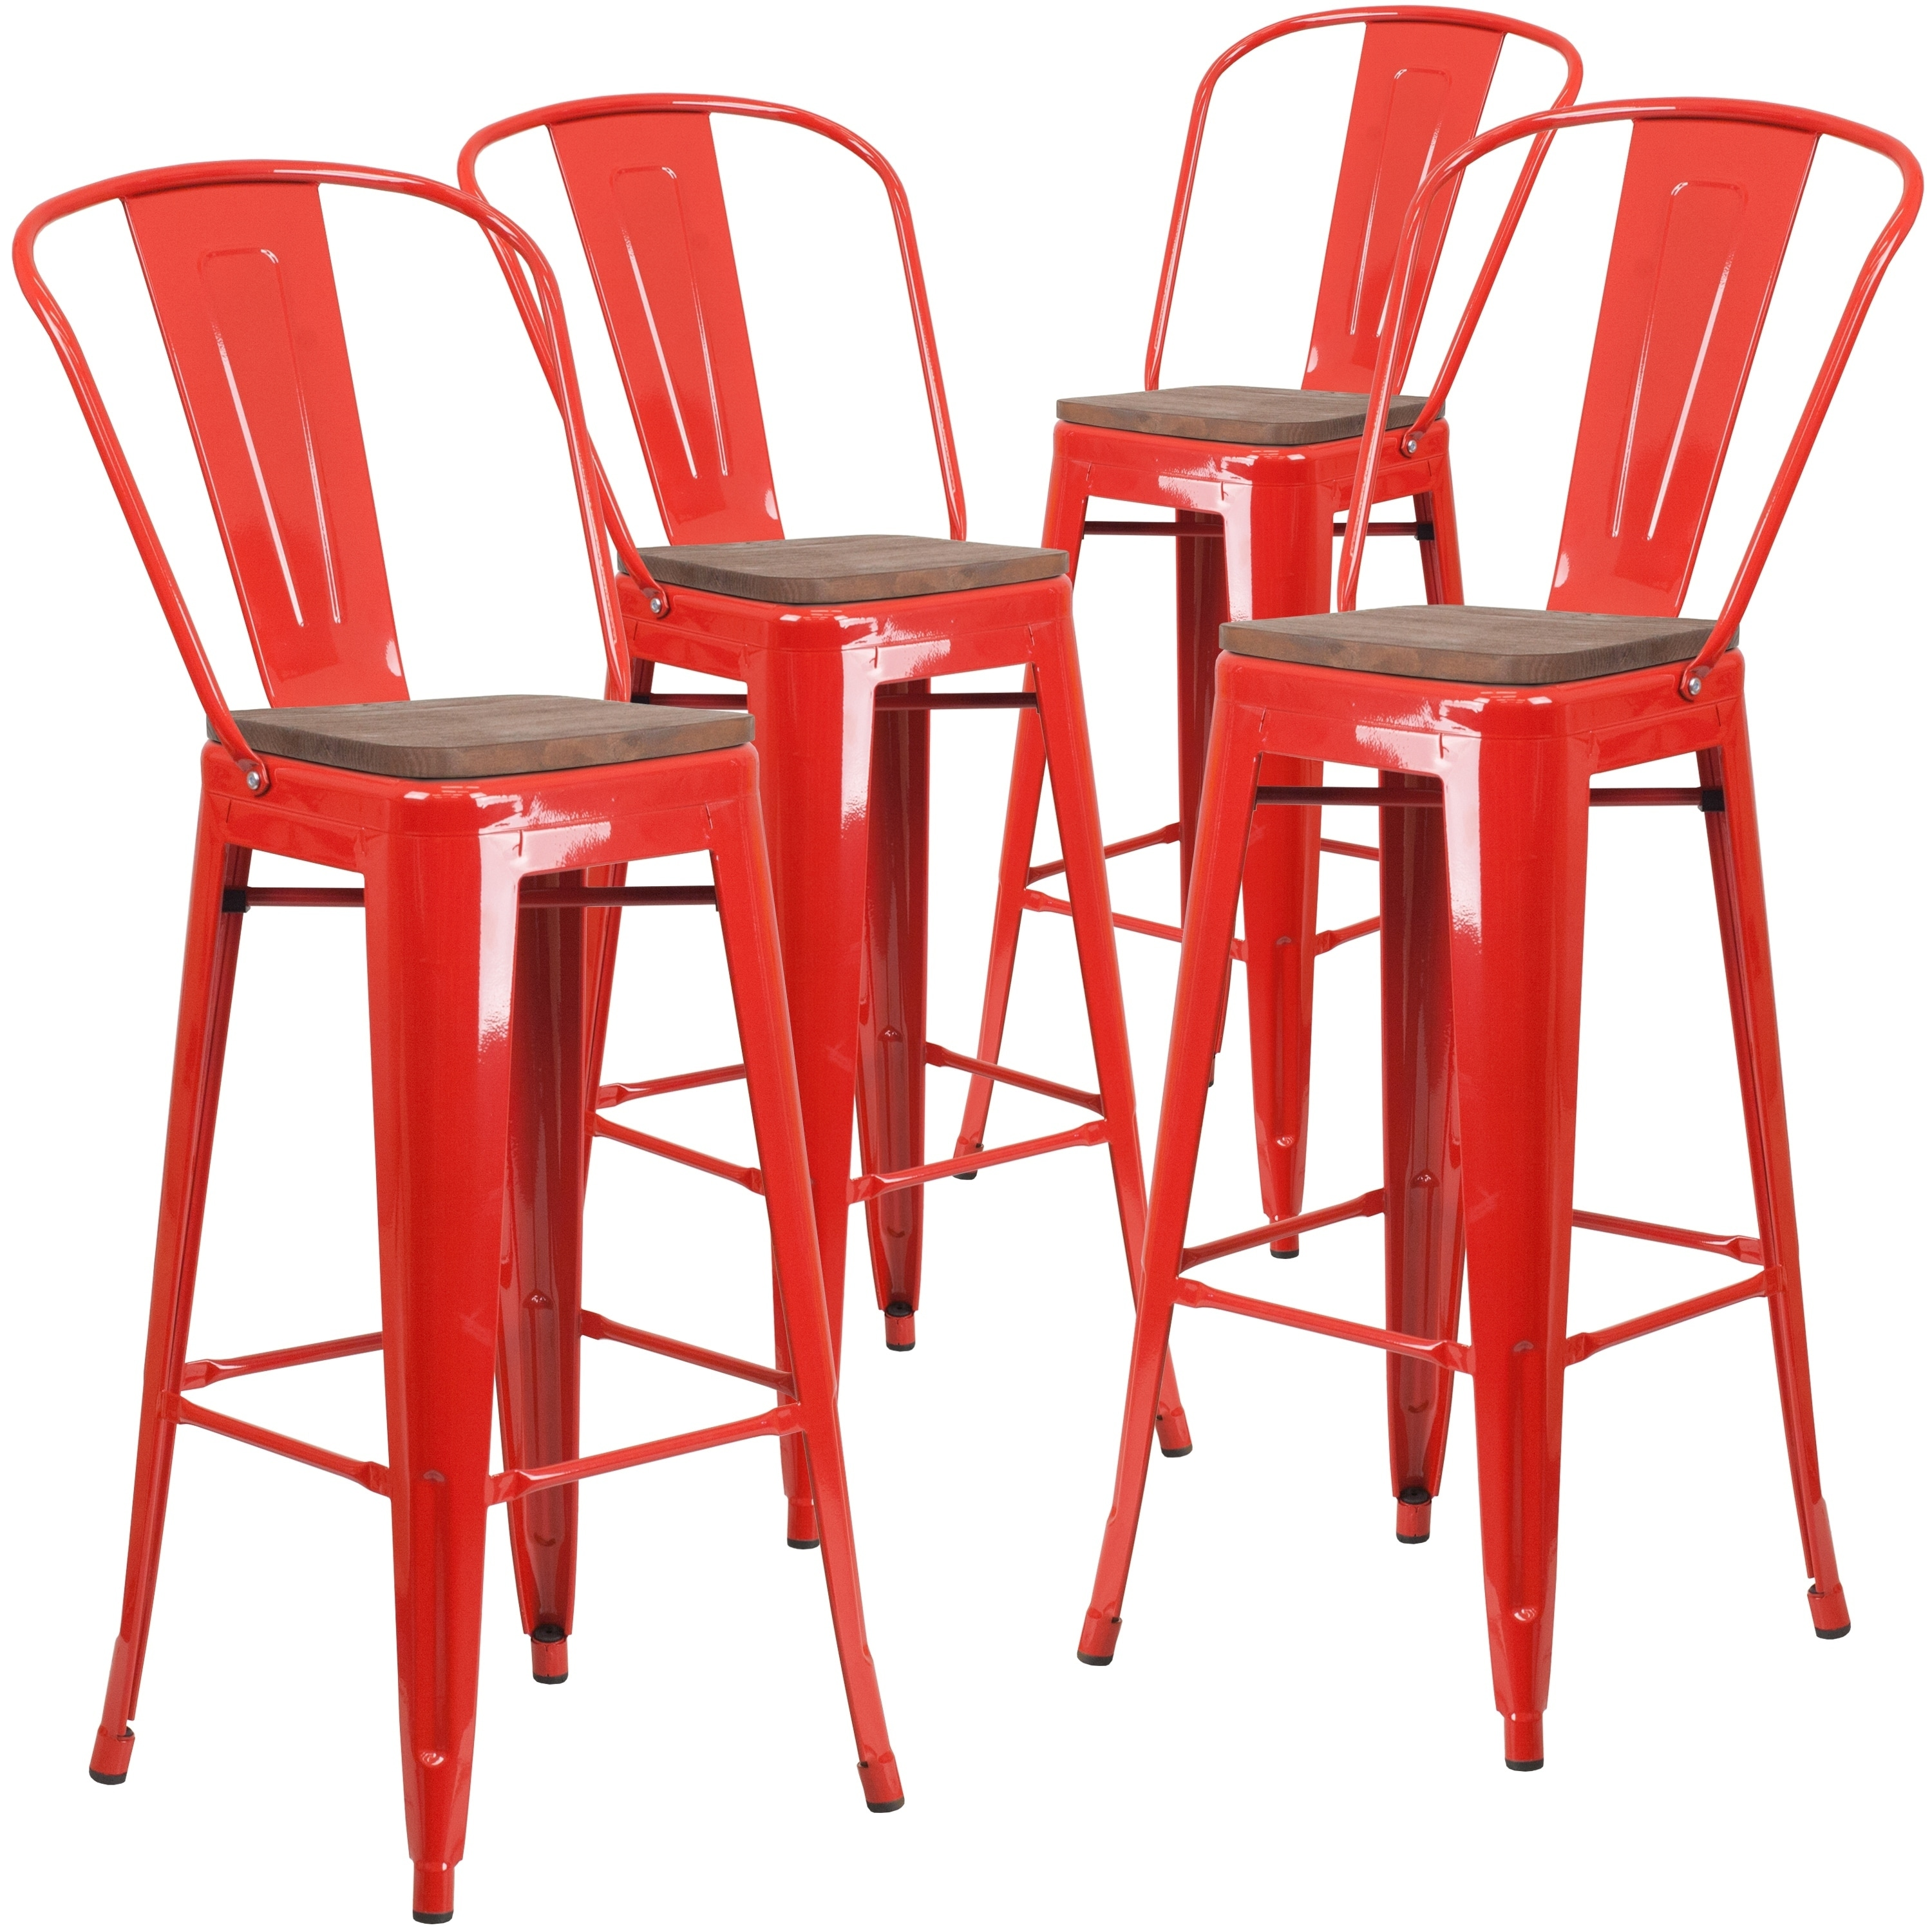 4 Pk 30 High Metal Barstool With Back And Wood Seat Ebay